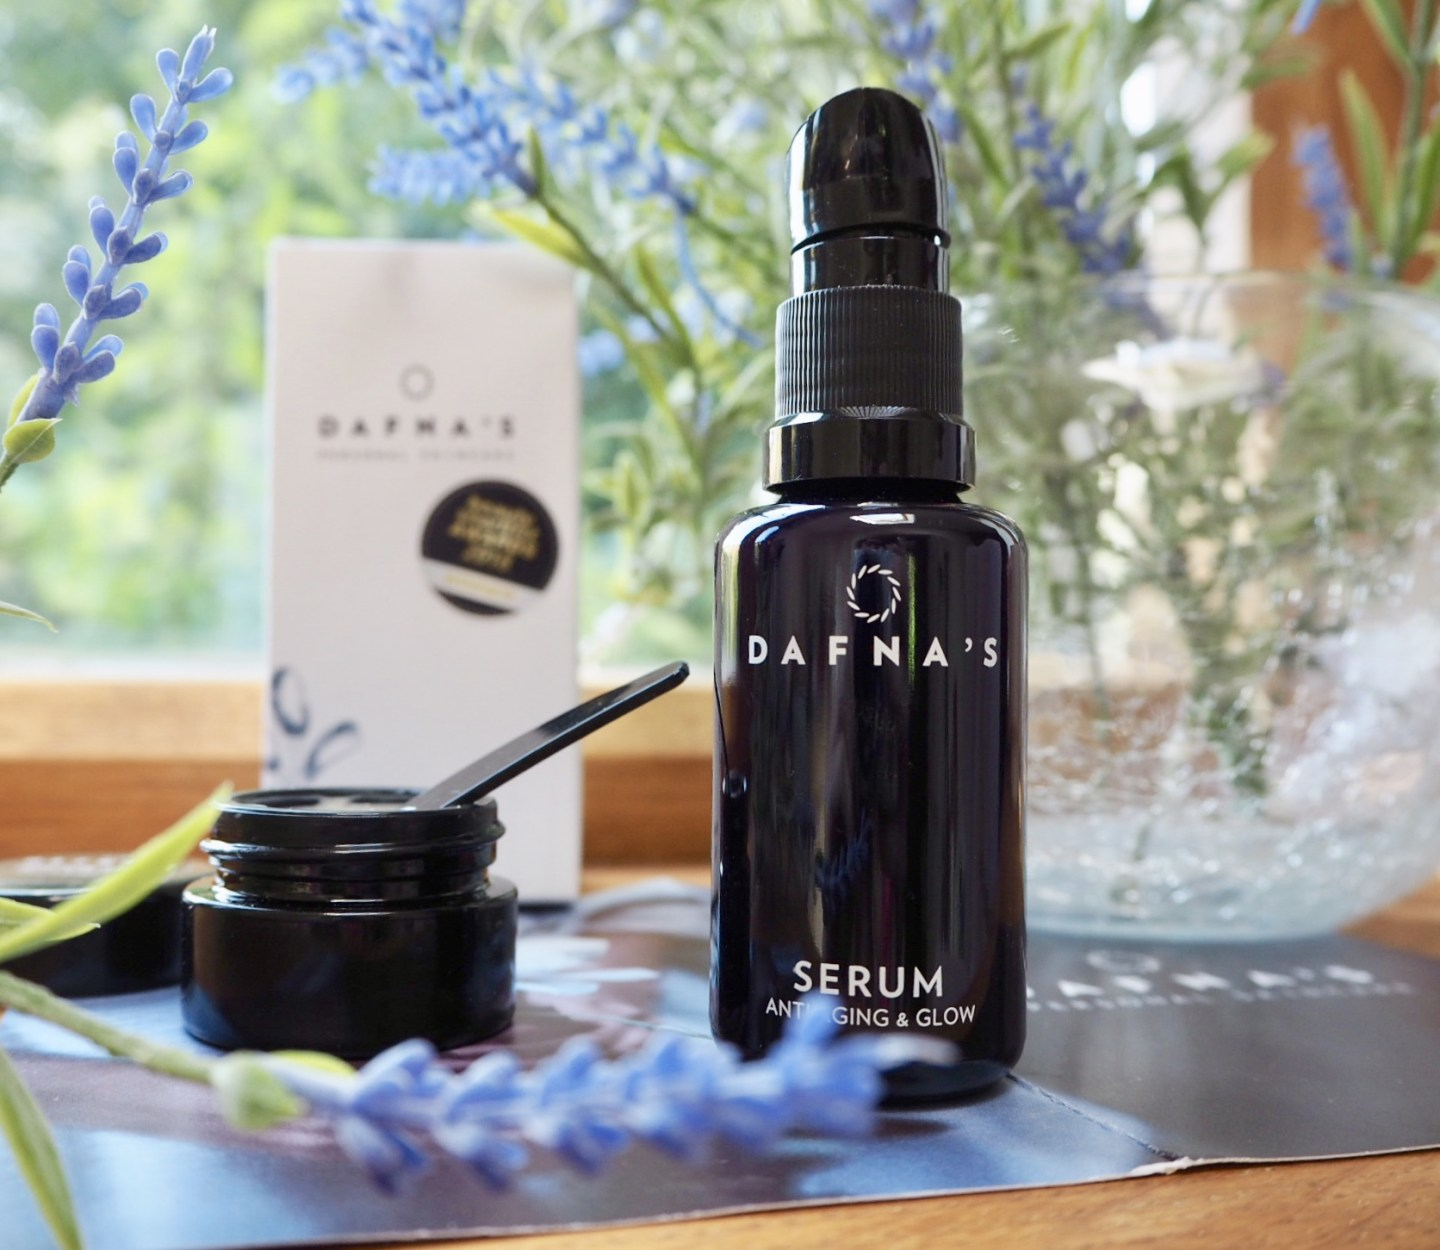 Dafna's personal skincare serum and glow